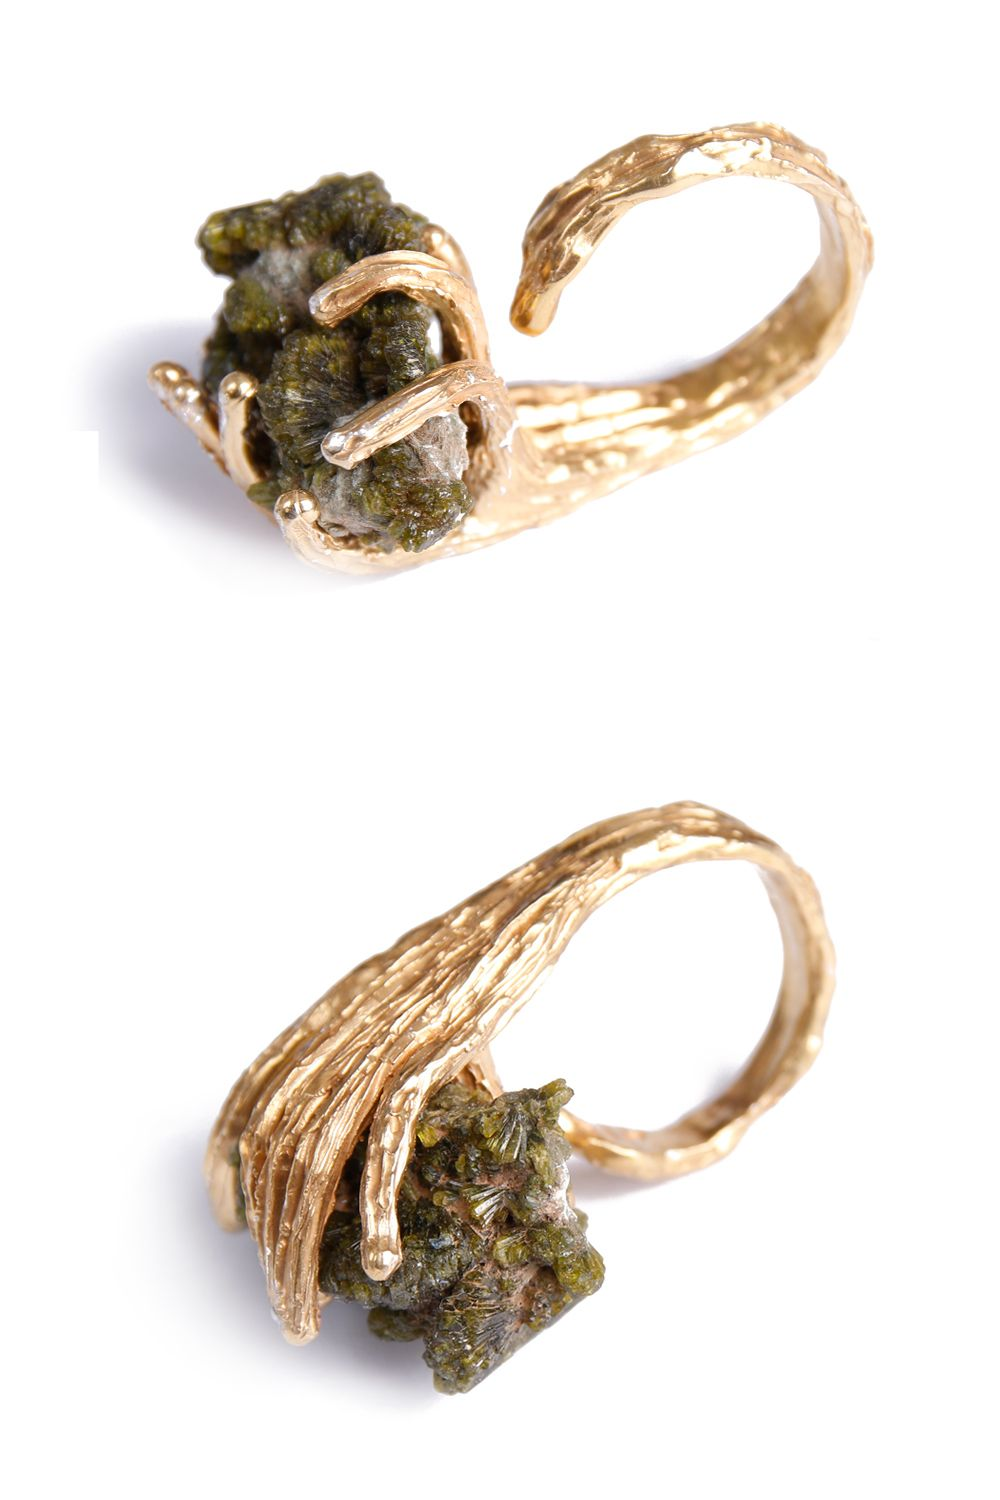 epidote crystal ring, silver and gold https://www.facebook.com/pinkmossjewelry